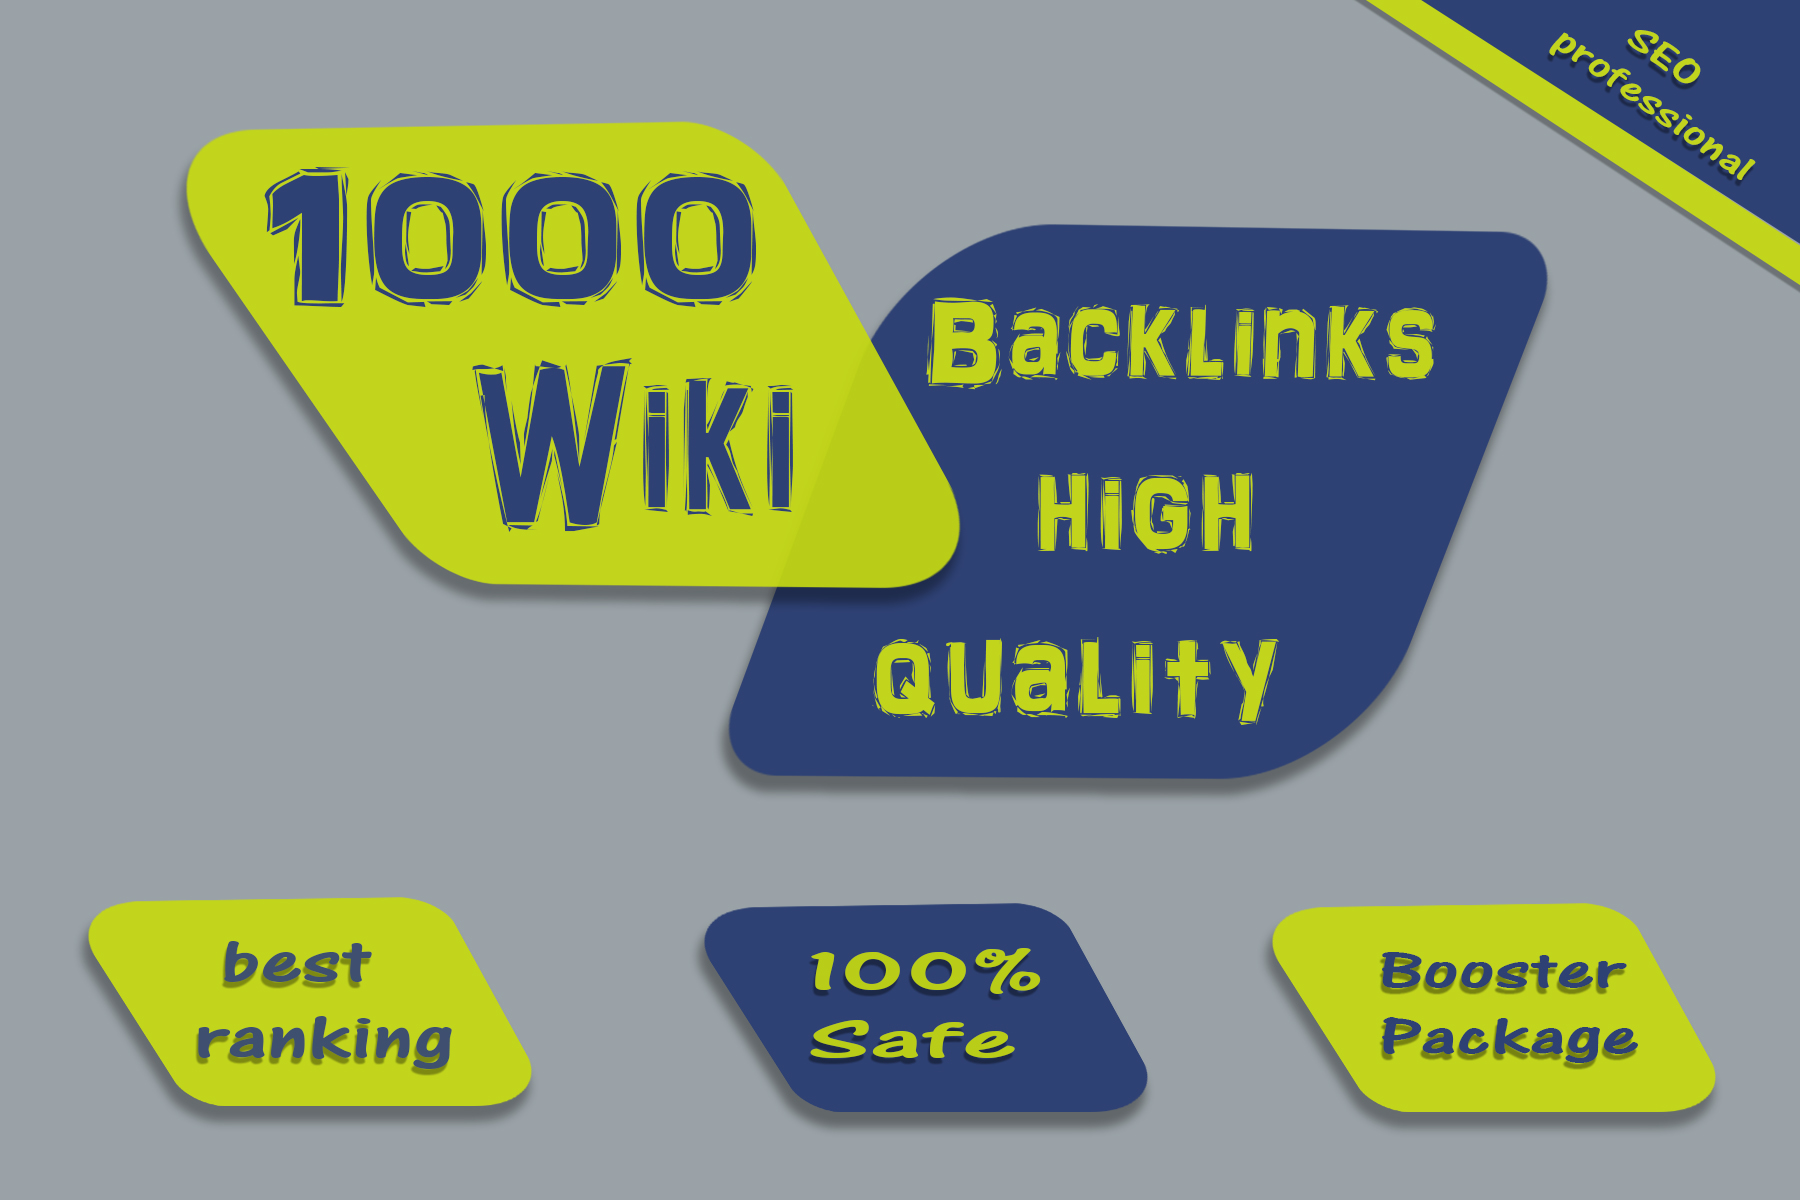 create 1000 Wiki backlinks mix profiles & articles